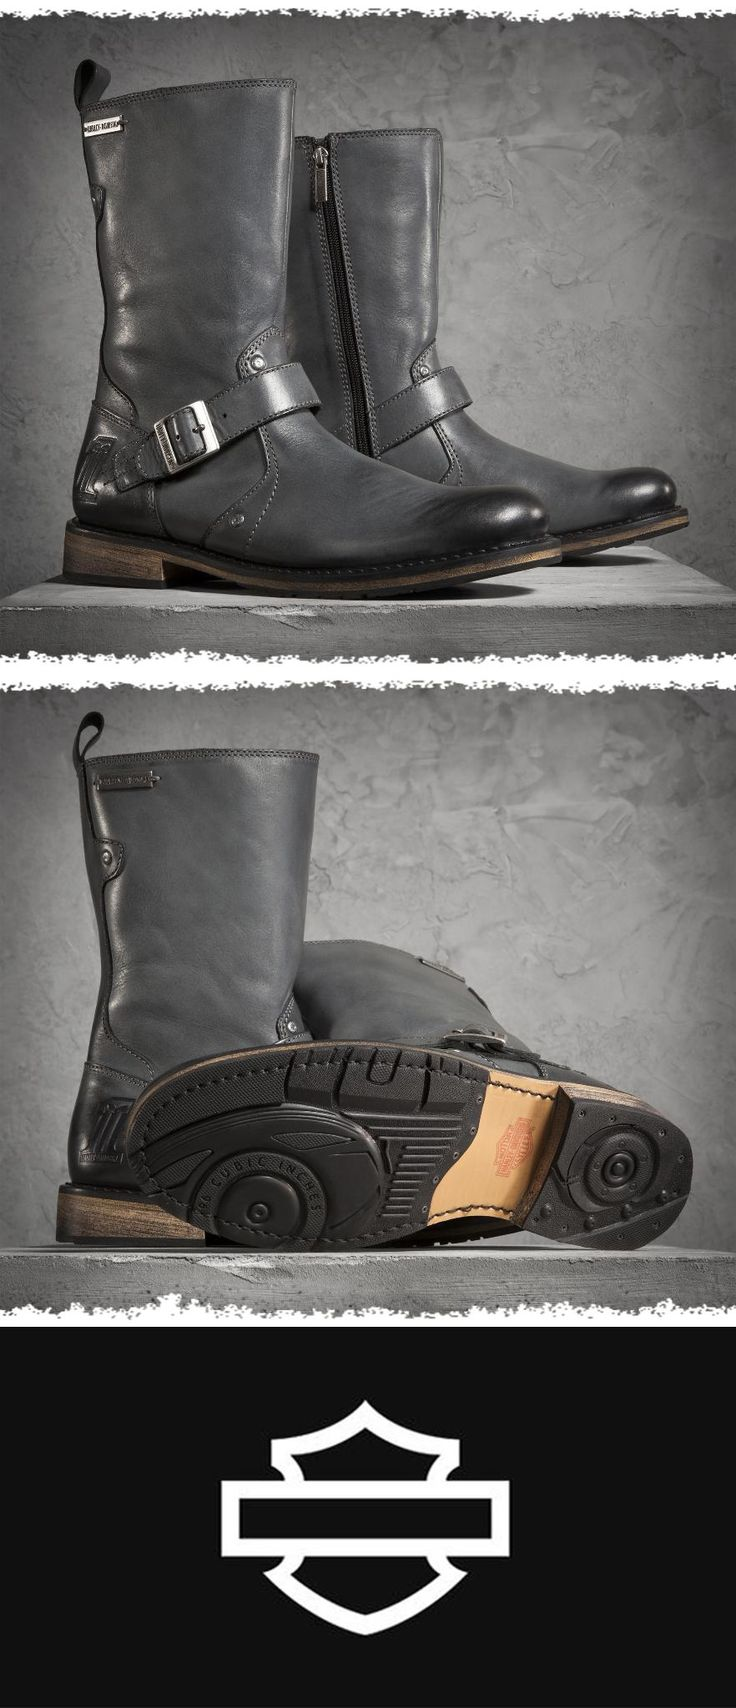 Who says you can't have stylish boots with excellent quality when you're kicking back off-the-bike?   Harley-Davidson Men's Brendan Boots #FathersDay